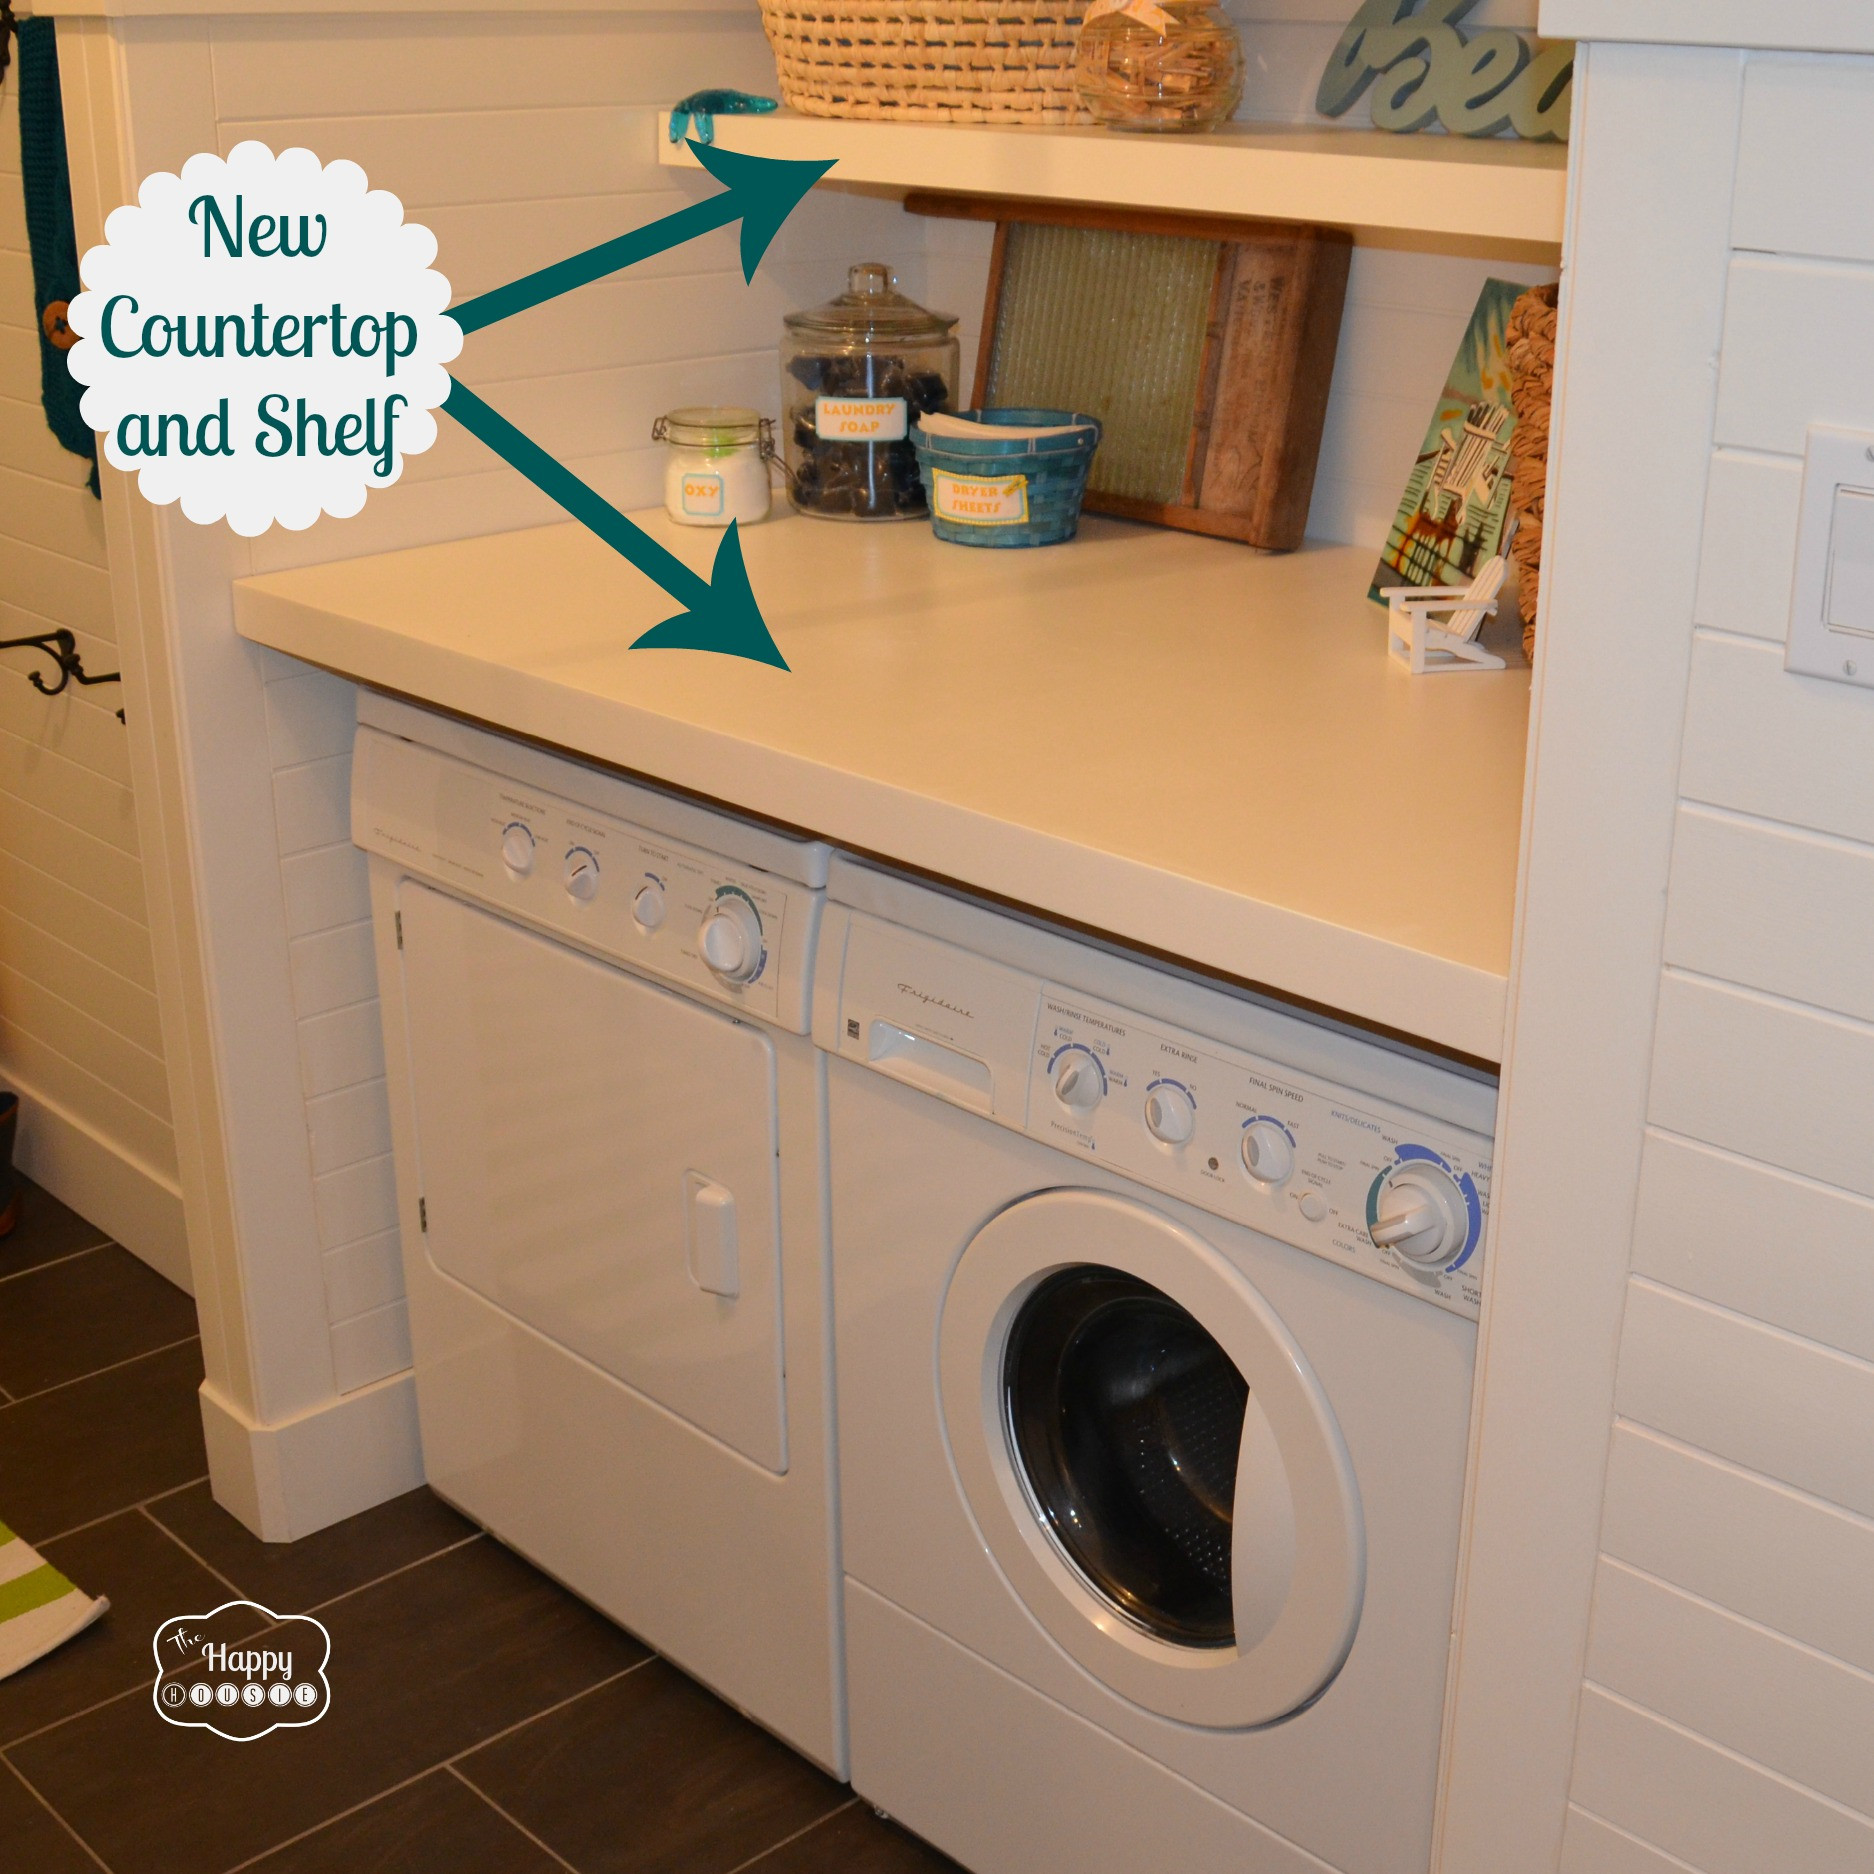 Best ideas about Laundry Room Countertop . Save or Pin How To Revamp a Laundry Room Mud Room on a Bud The Now.